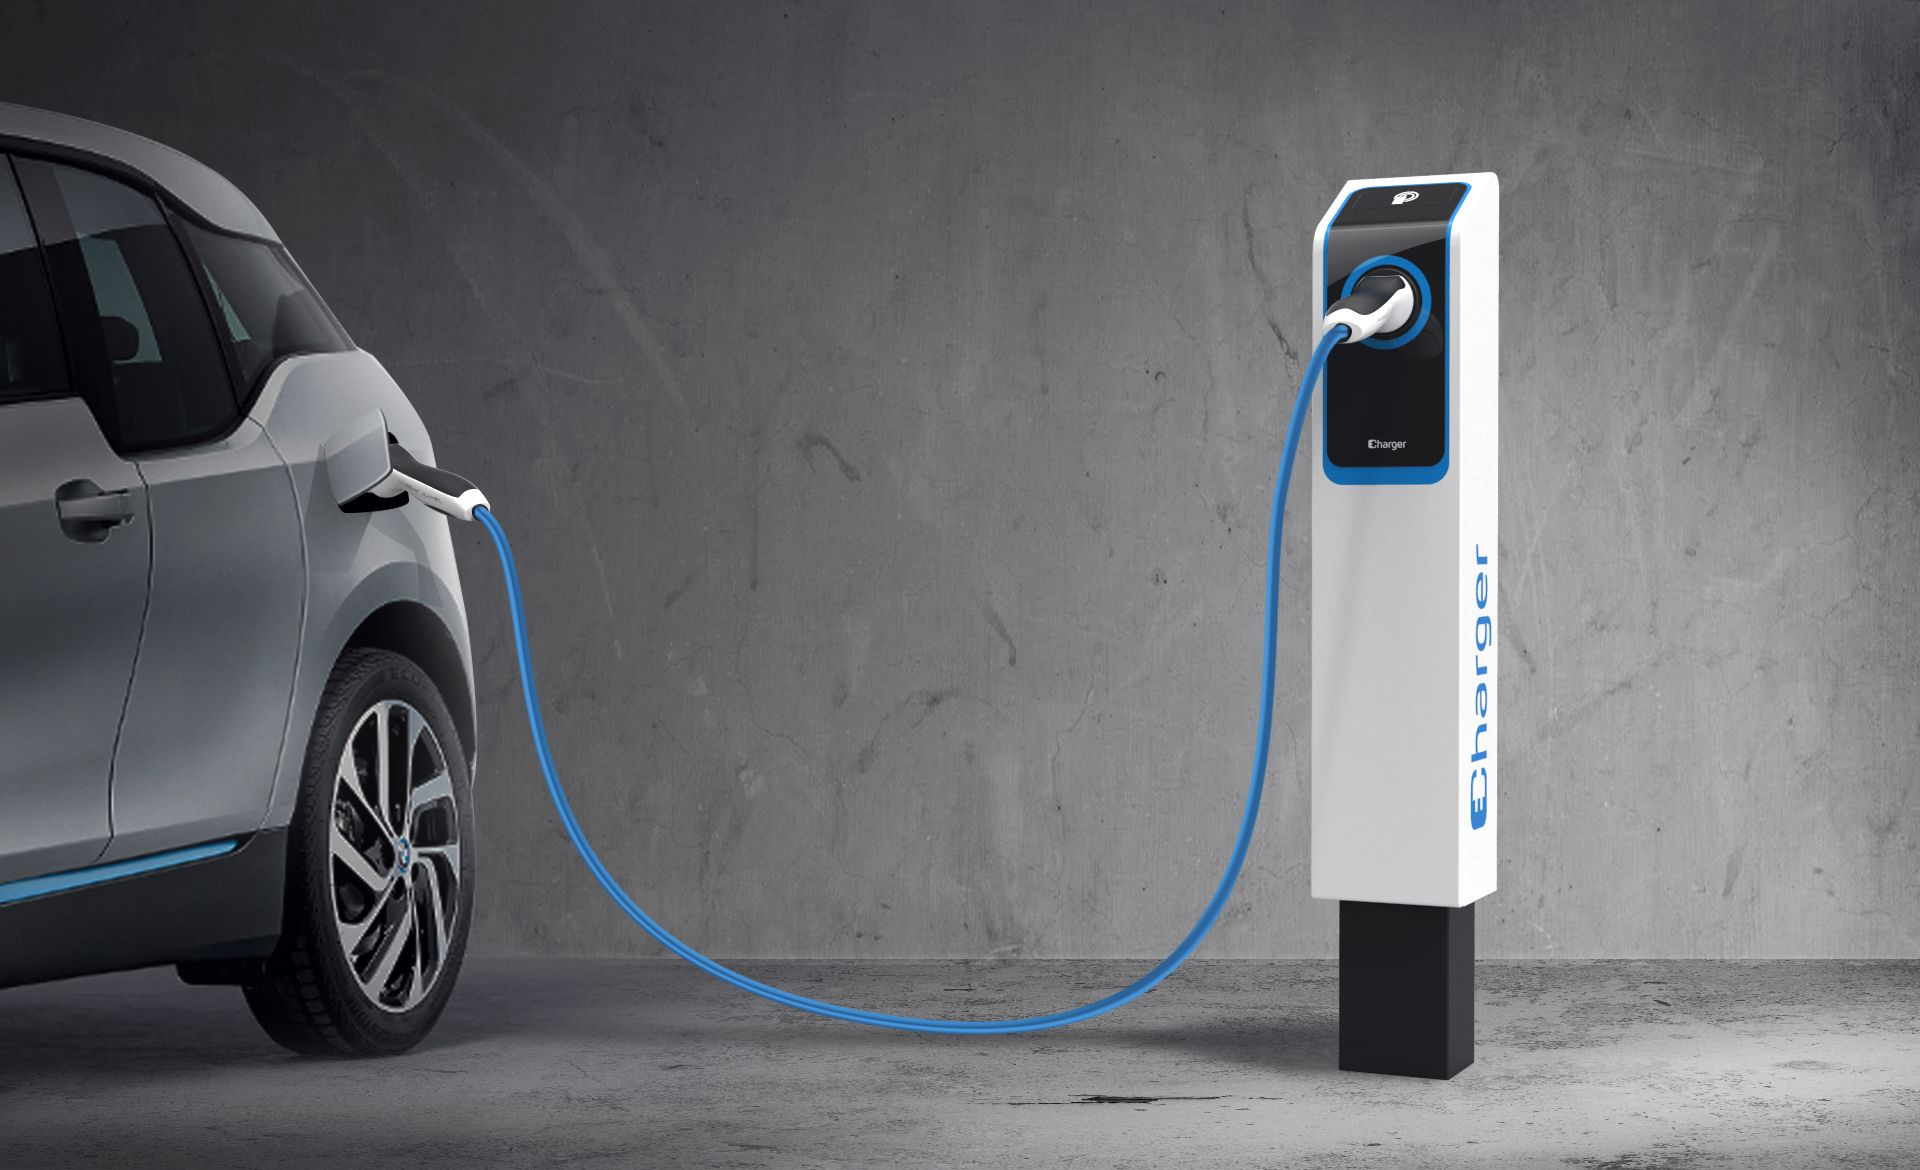 Evopro Electric Car Charger Design By Maform Studio